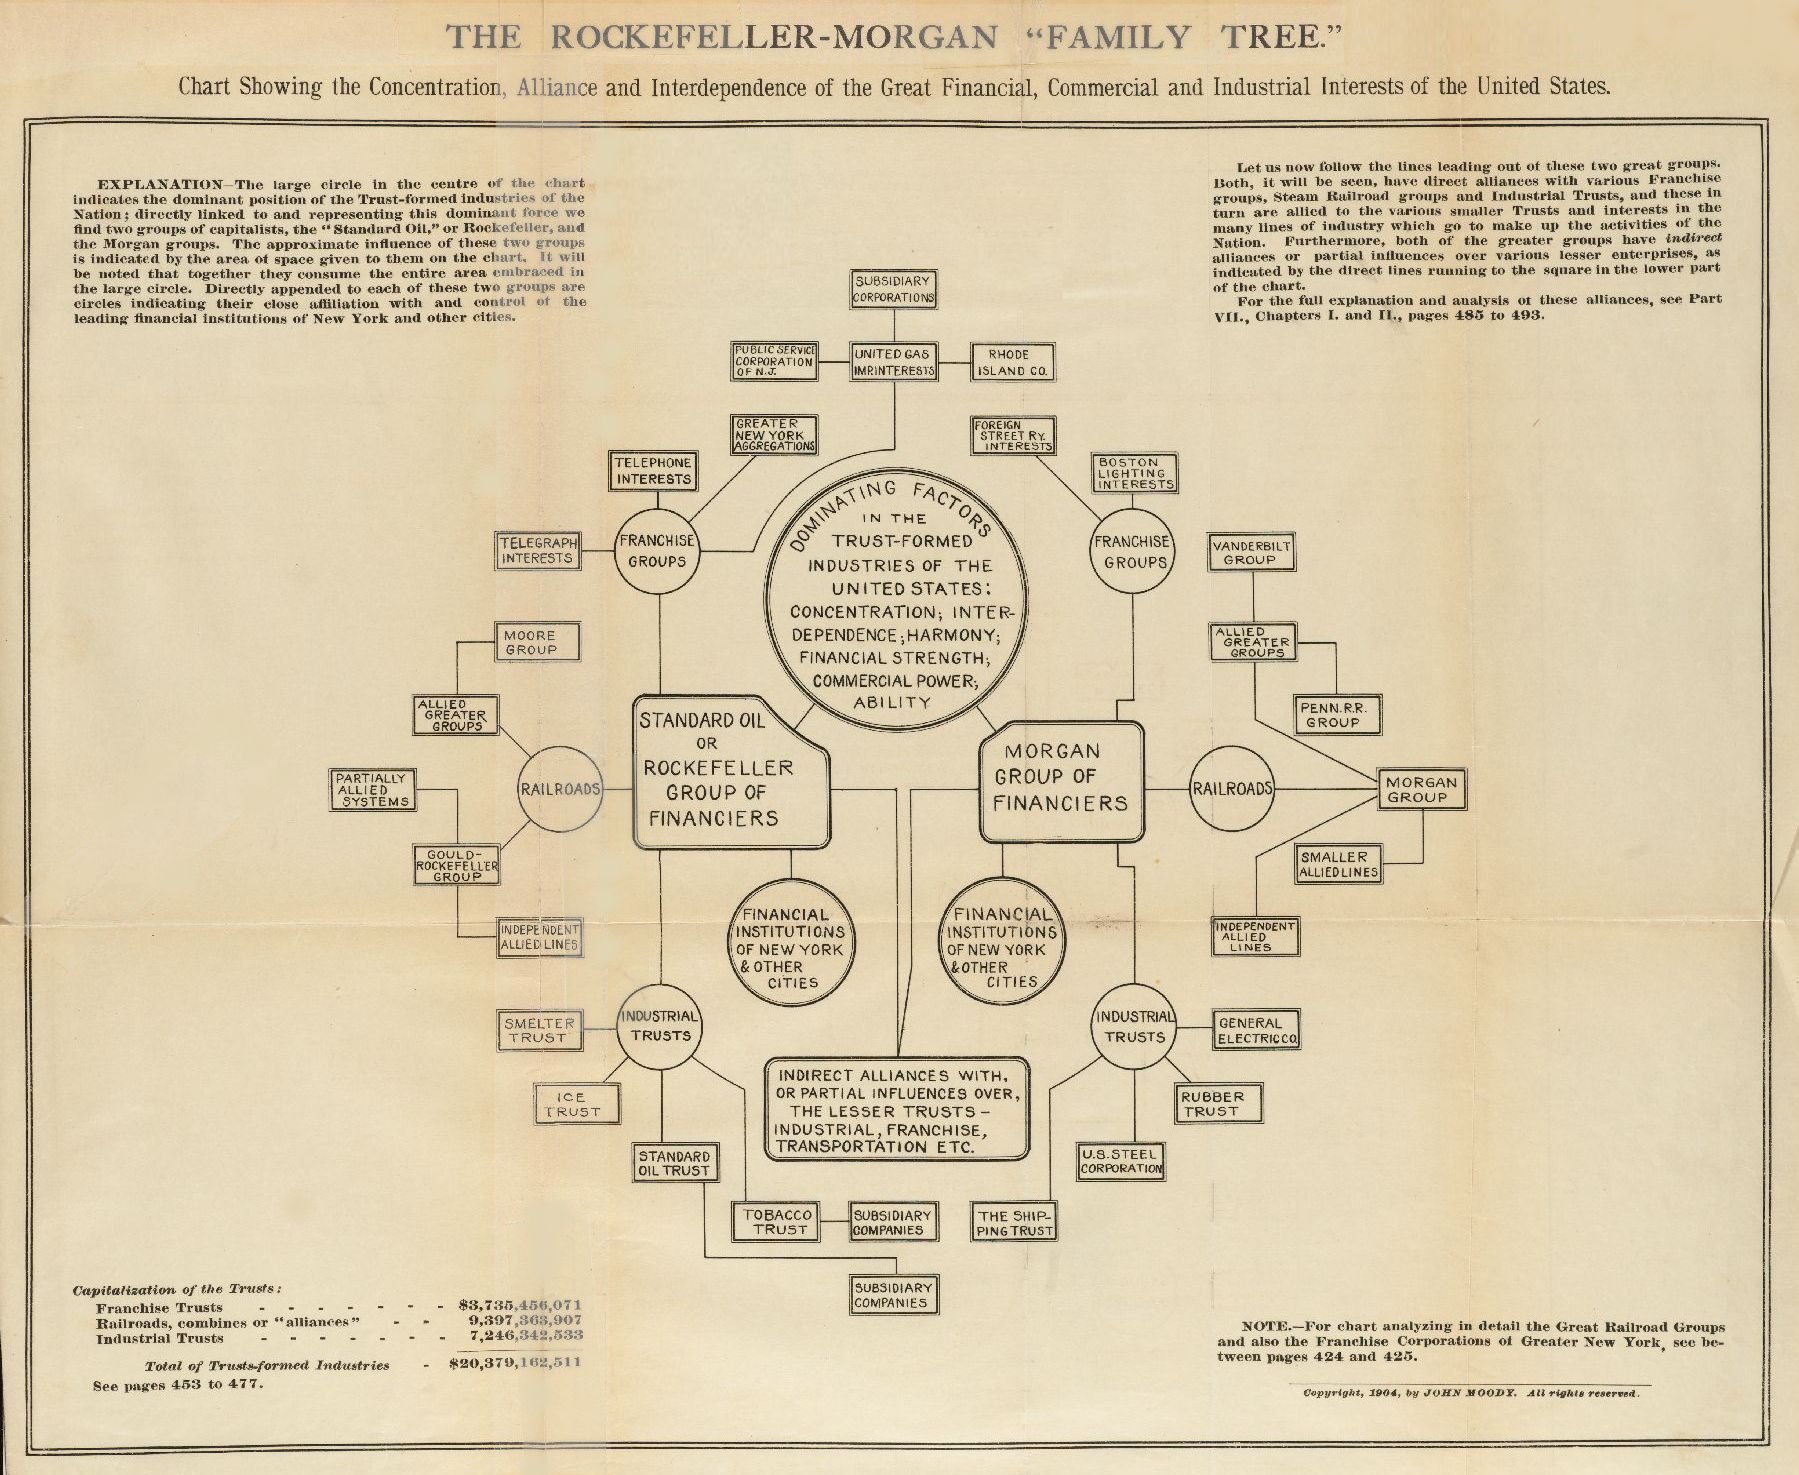 Rockefeller Morgan Family Tree